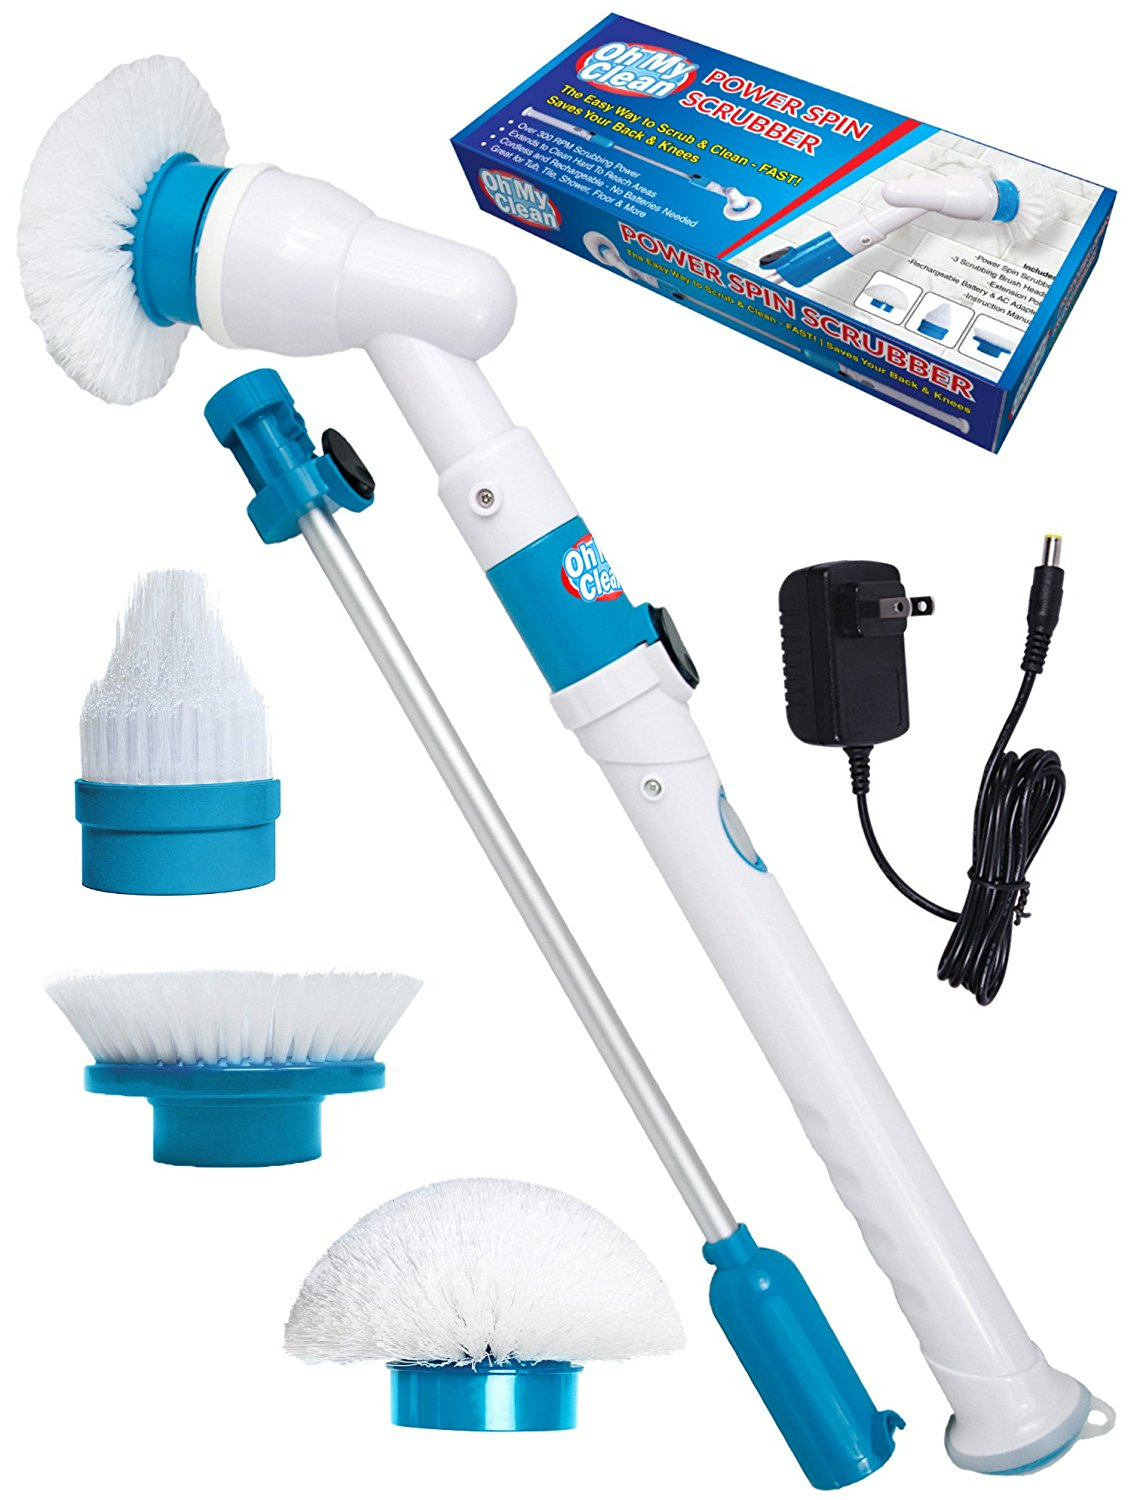 Power Spin Scrubber Cleaning Brush - Upgraded Electric Scrubber with 3 Brush Heads, Extension Handle, Rechargeable Battery - Turbo Cordless Handheld Bathroom, Floor, Tile, Shower, Bathtub Cleaner